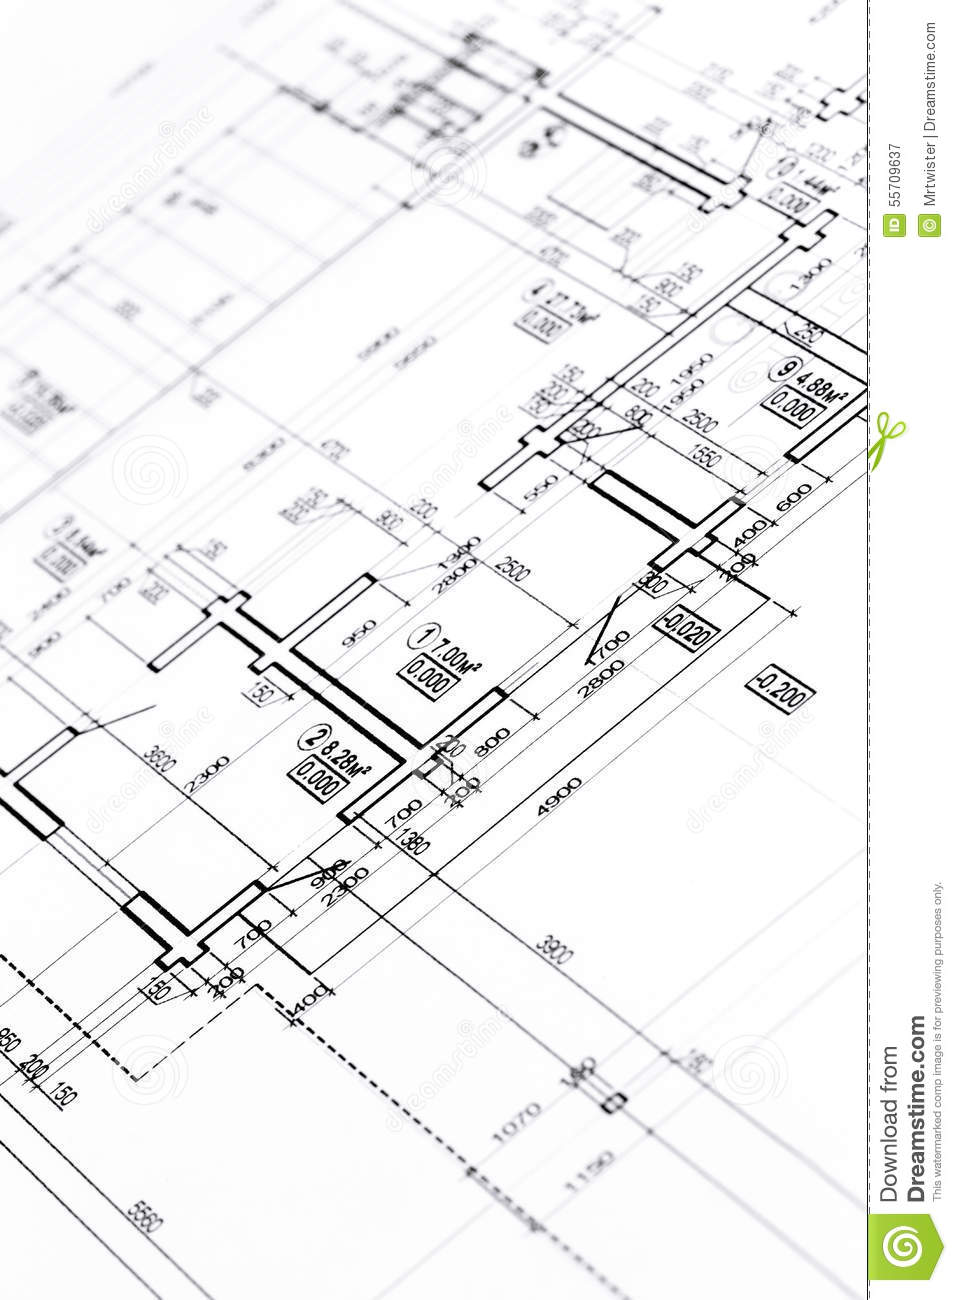 Architectural floor plan stock photo image 55709637 for Architecture plan drawing